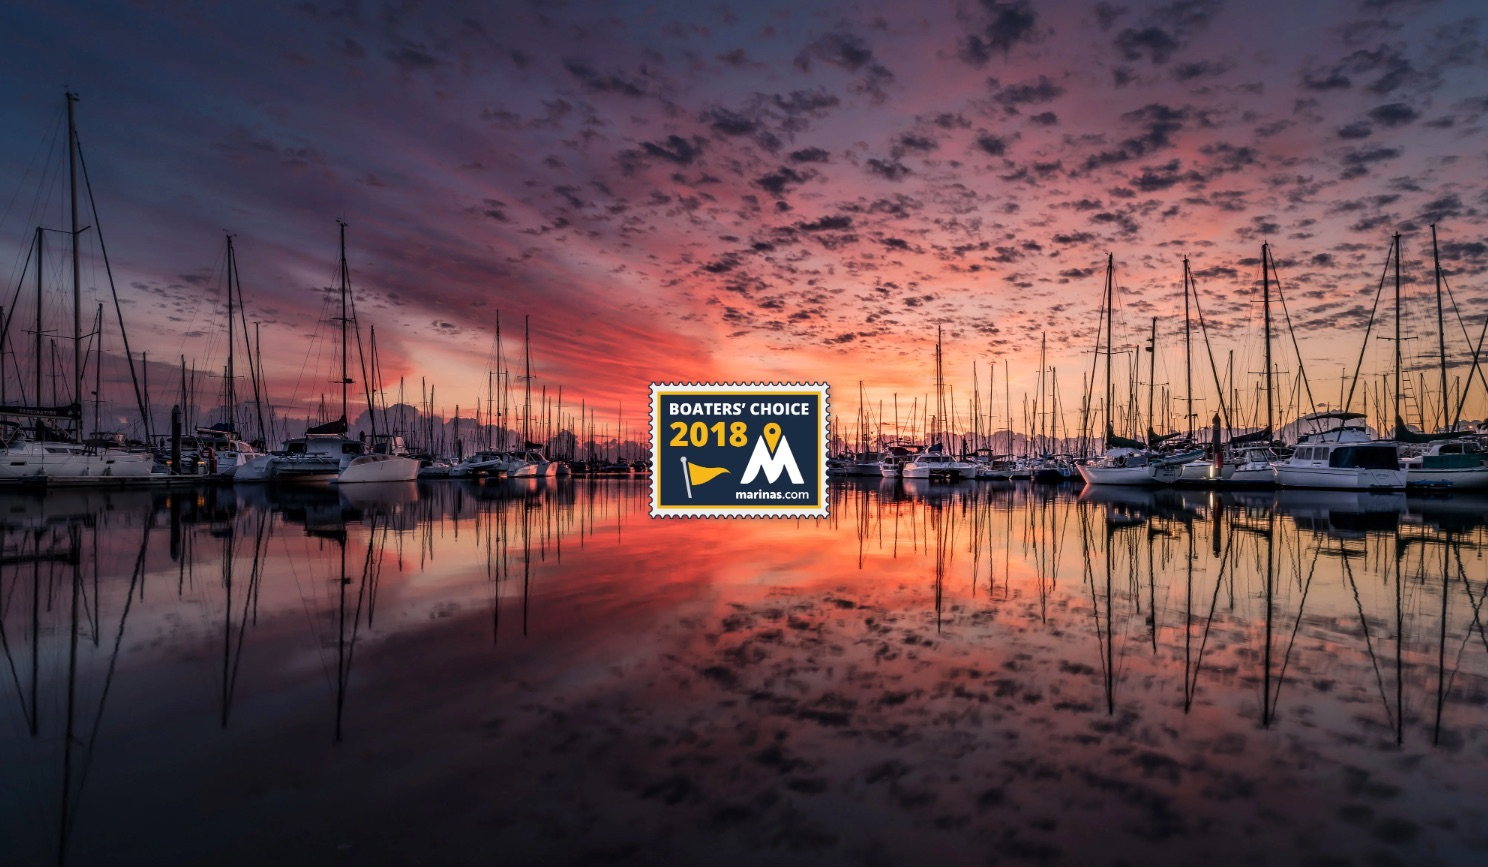 Announcing the 2018 Boaters' Choice Award Winners and New Elite Fleet Tier